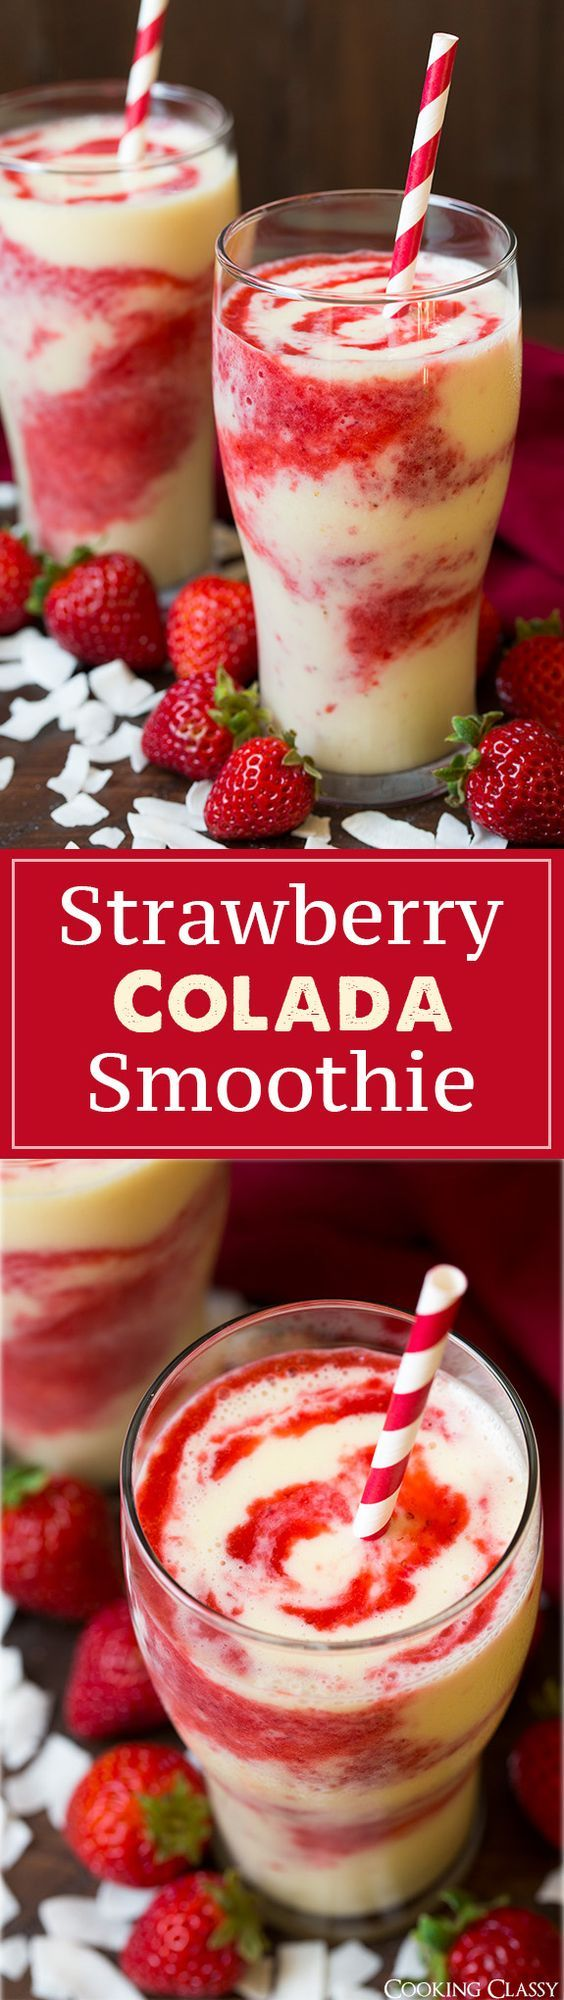 Strawberry Colada Smoothie - these are so refreshing on a hot summer day! Love…